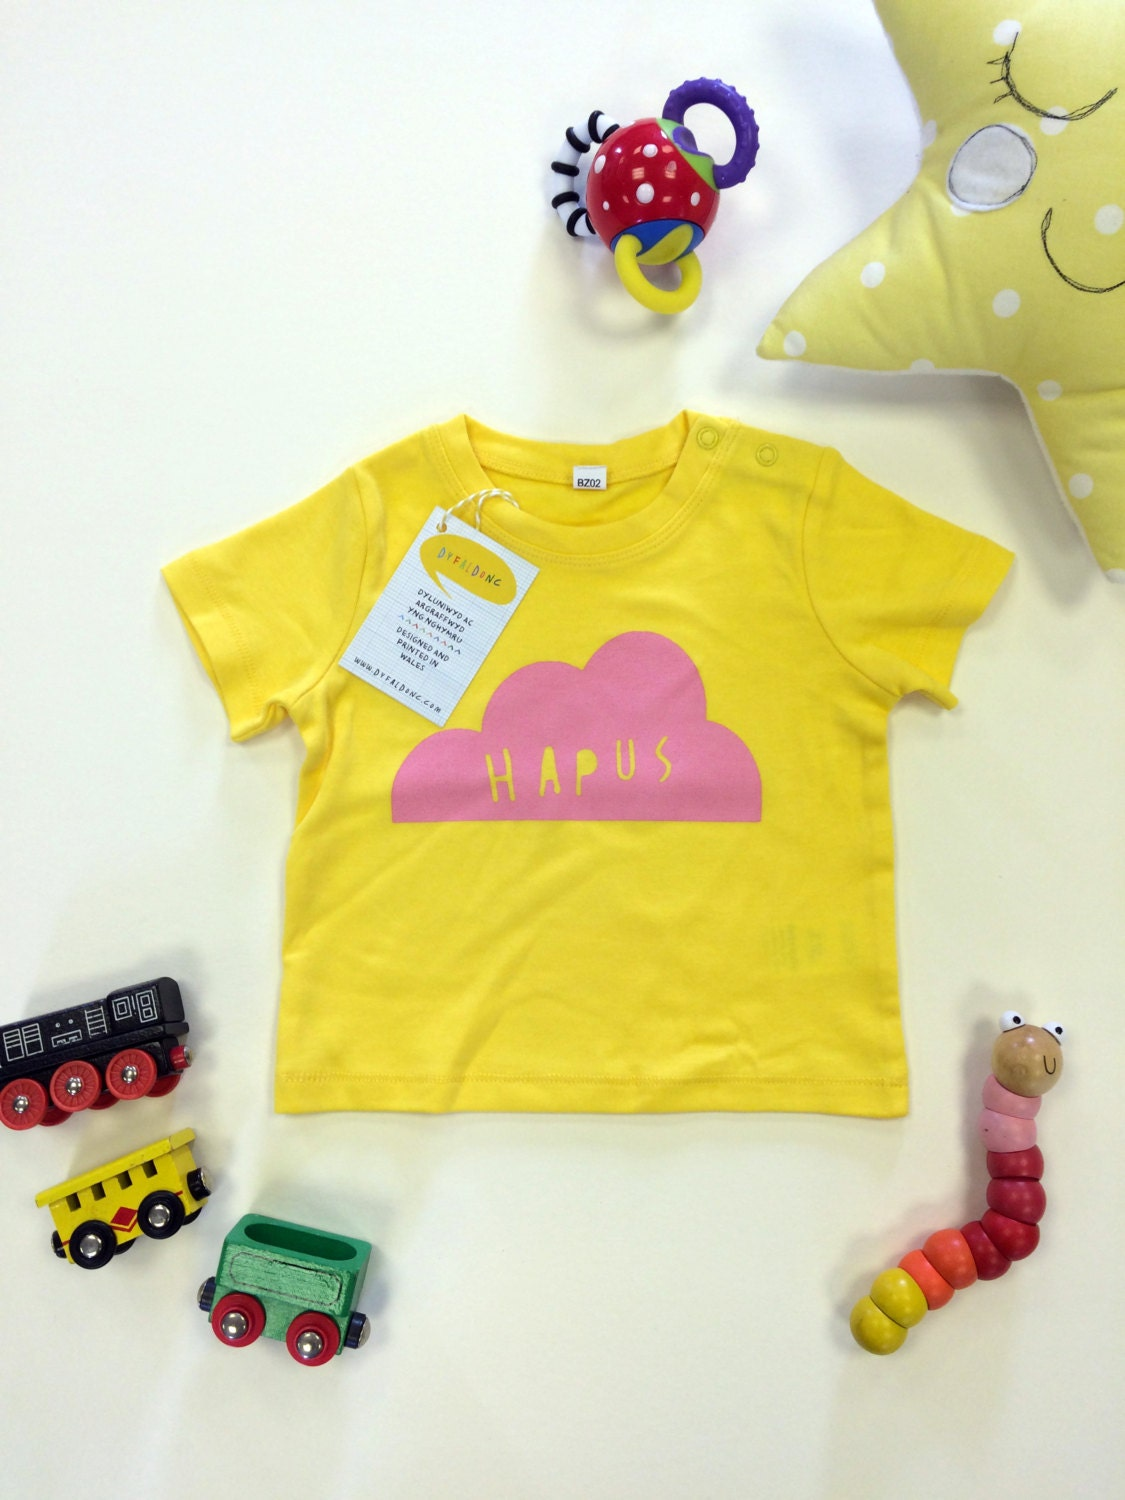 sale   baby clothes yellow t shirt welsh text hapus happy